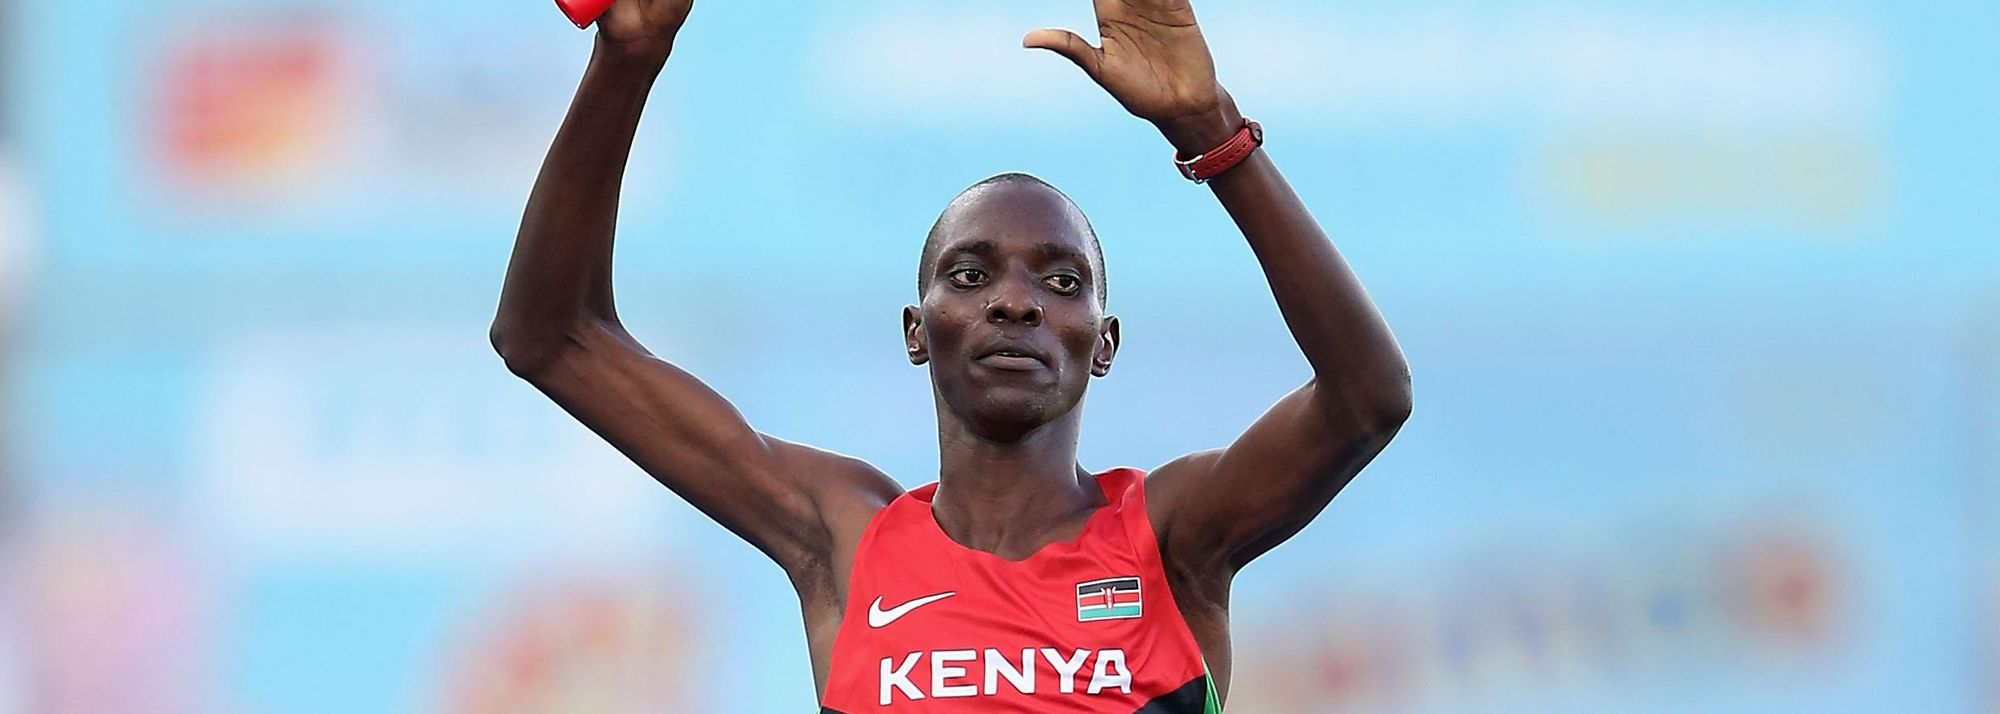 it was widely agreed that Kenya was fully capable of breaking the men's 4x1500m world record at the IAAF World Relays but, unlike in the women's event which had been relatively rarely run at international level before this year, most pundits stopped short of calling the men's mark a certainty.